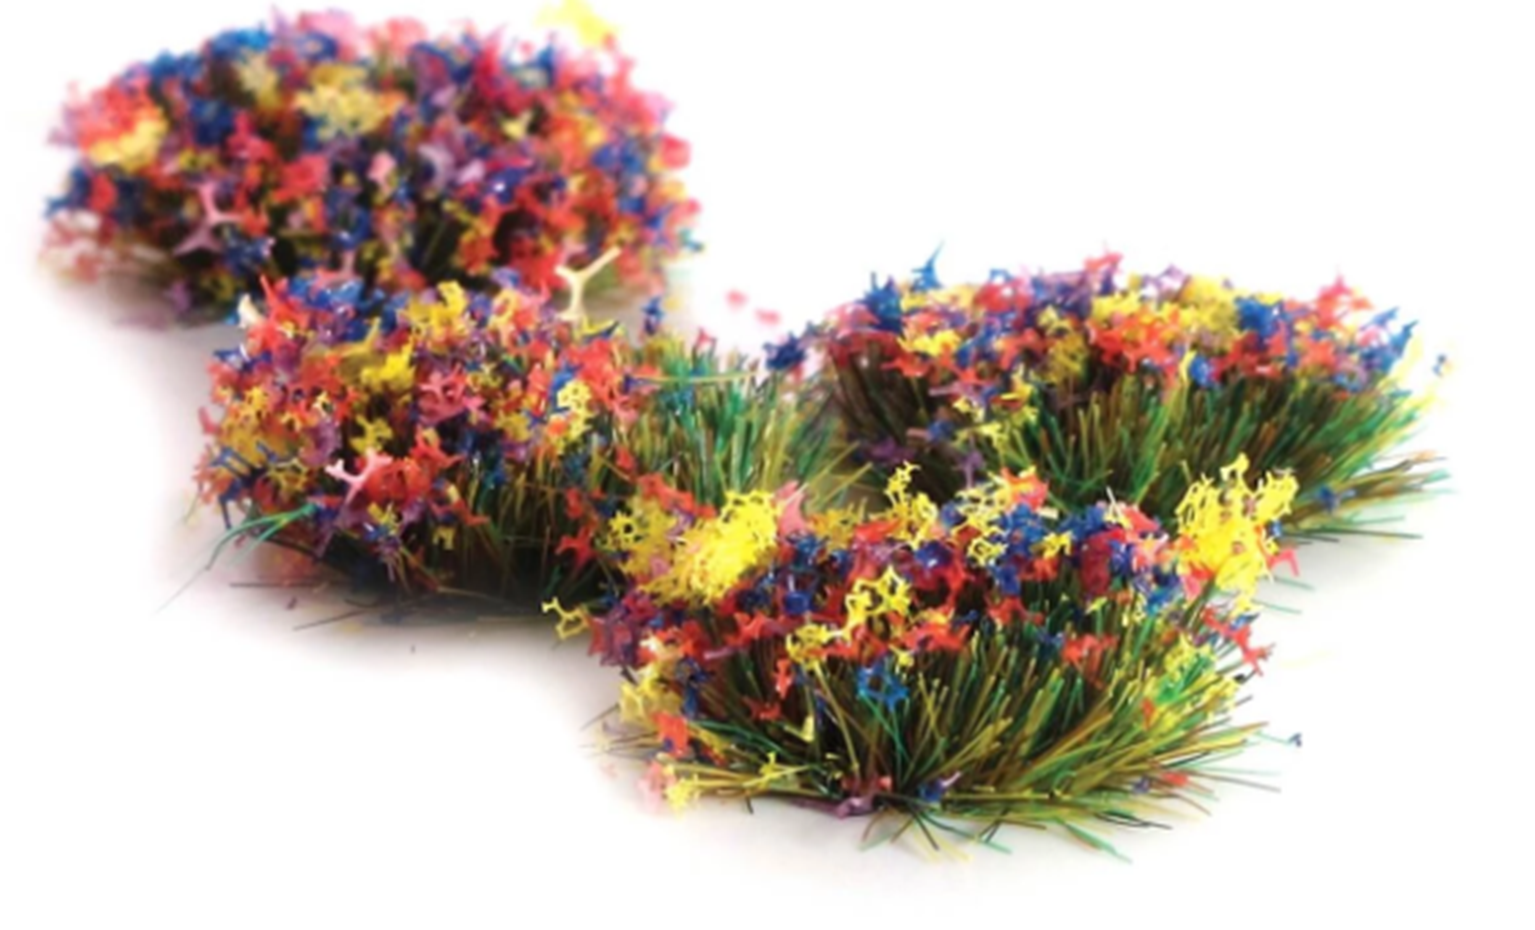 4mm Self Adhesive Grass Tufts with Flower